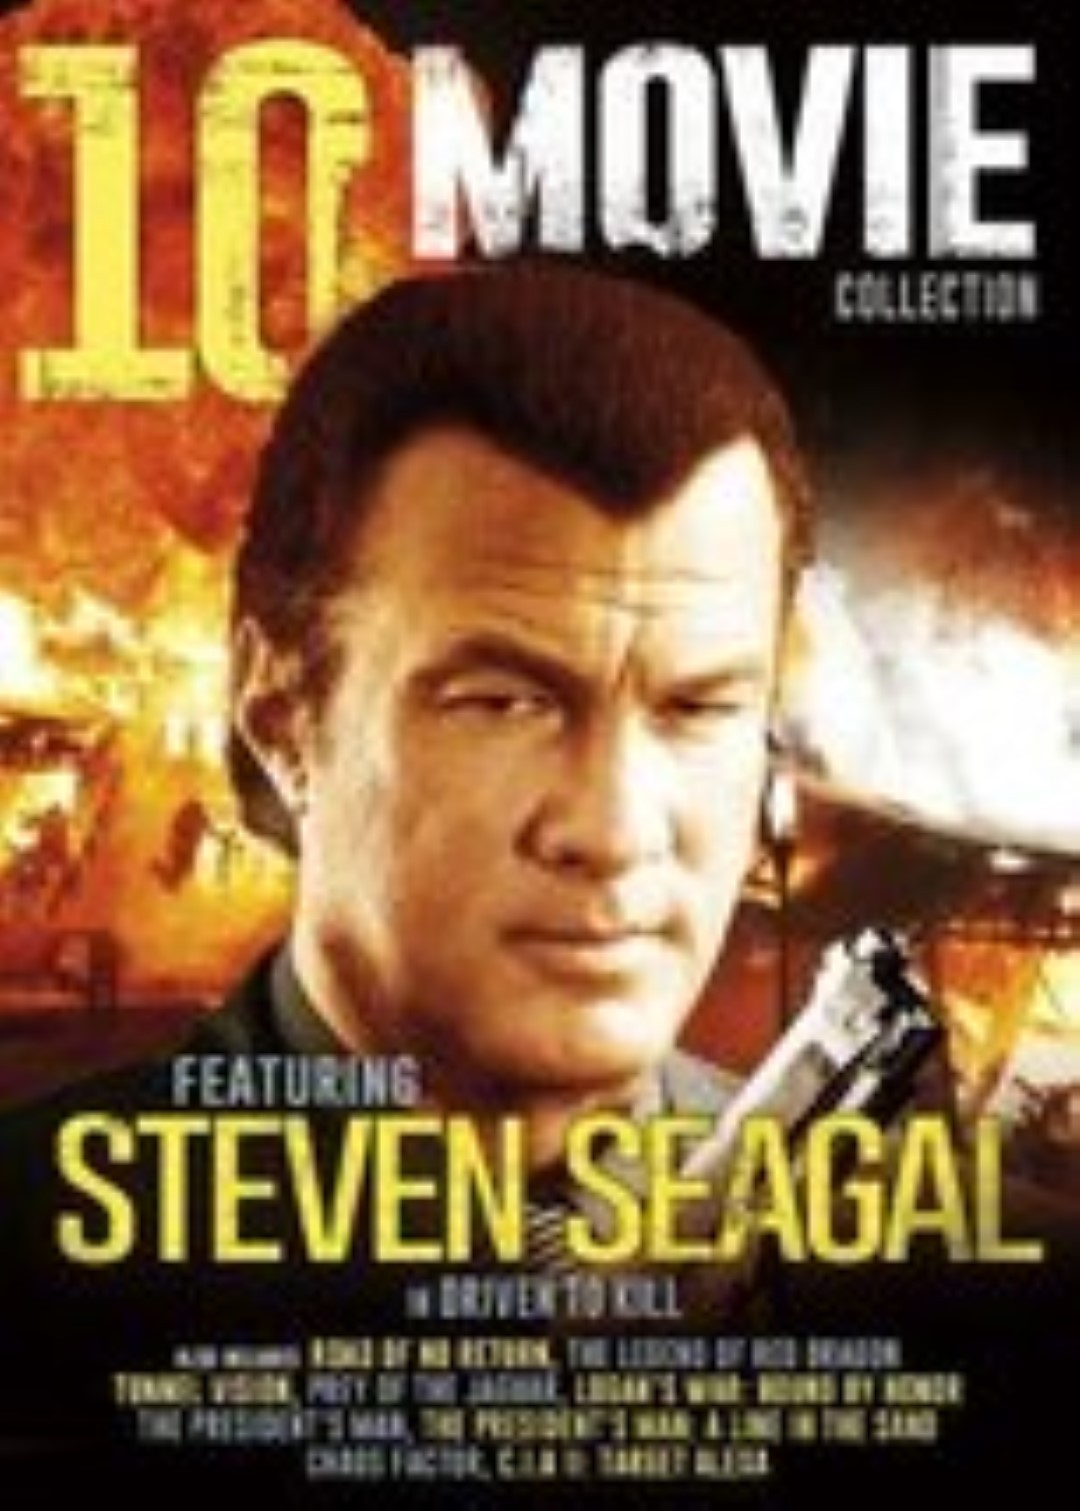 10-Movie Action Collection V.8  Steven Segal Dvd